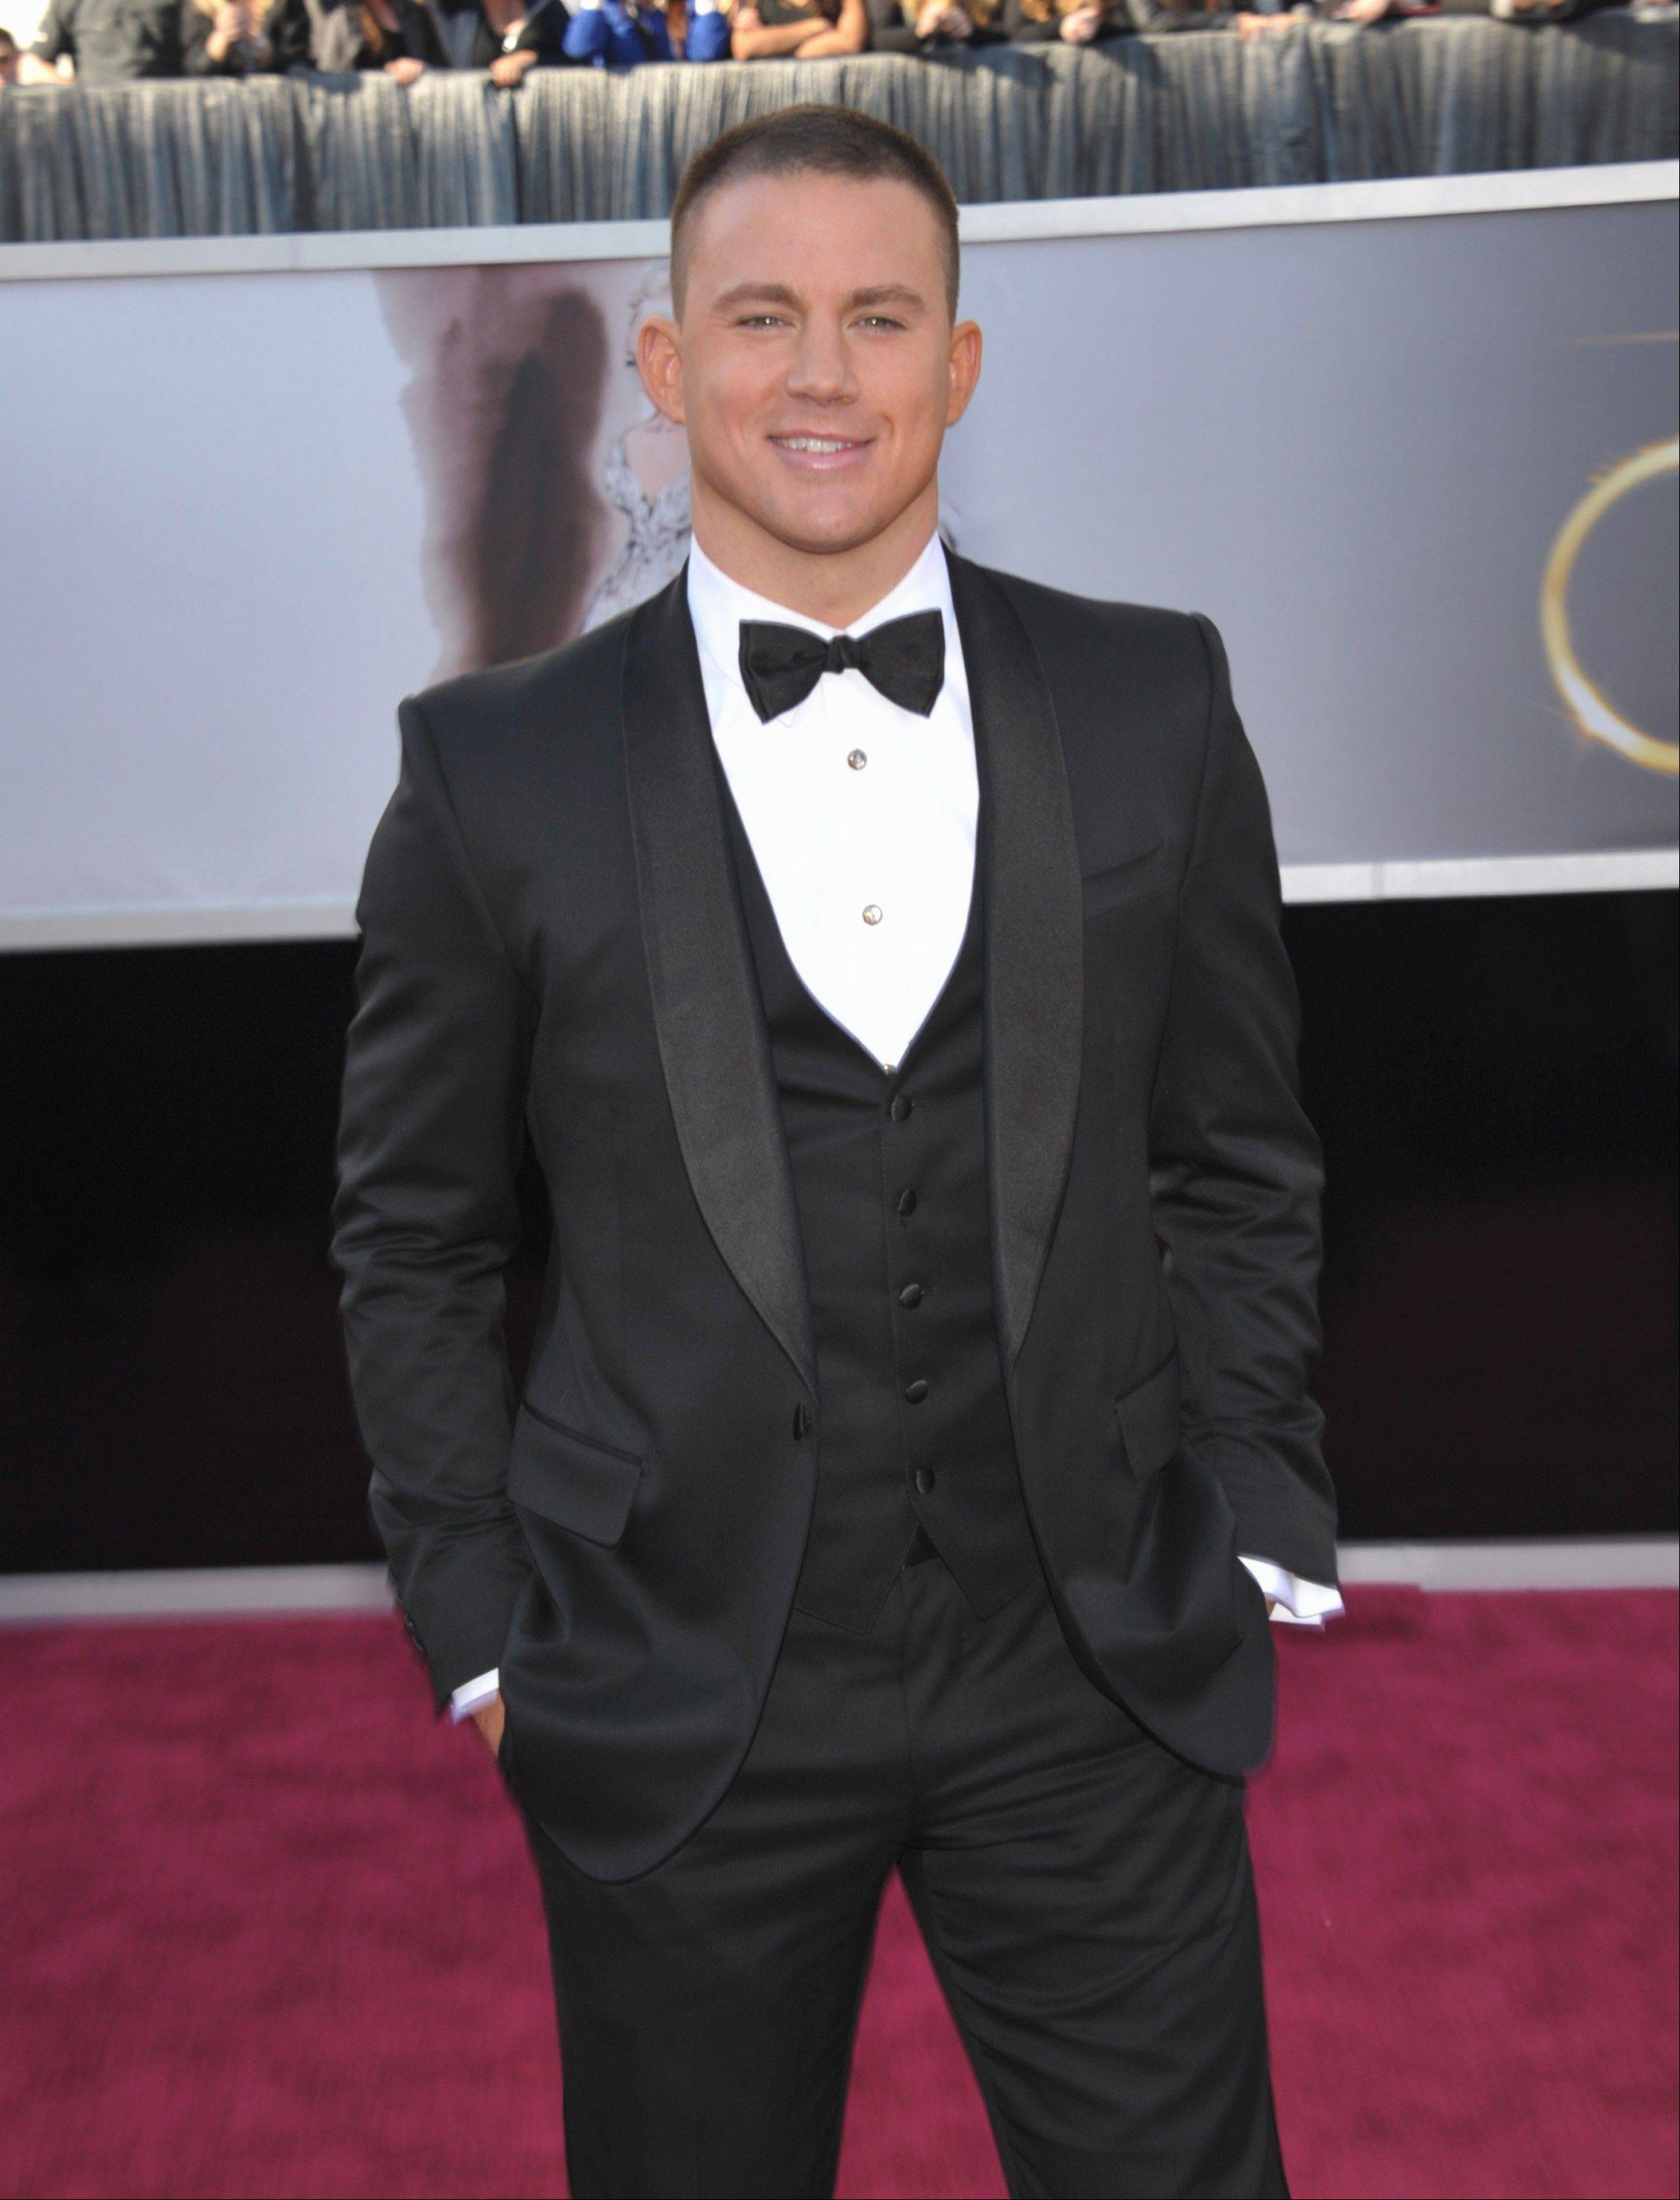 Actor Channing Tatum arrives at the 85th Academy Awards at the Dolby Theatre on Sunday Feb. 24, 2013, in Los Angeles.\